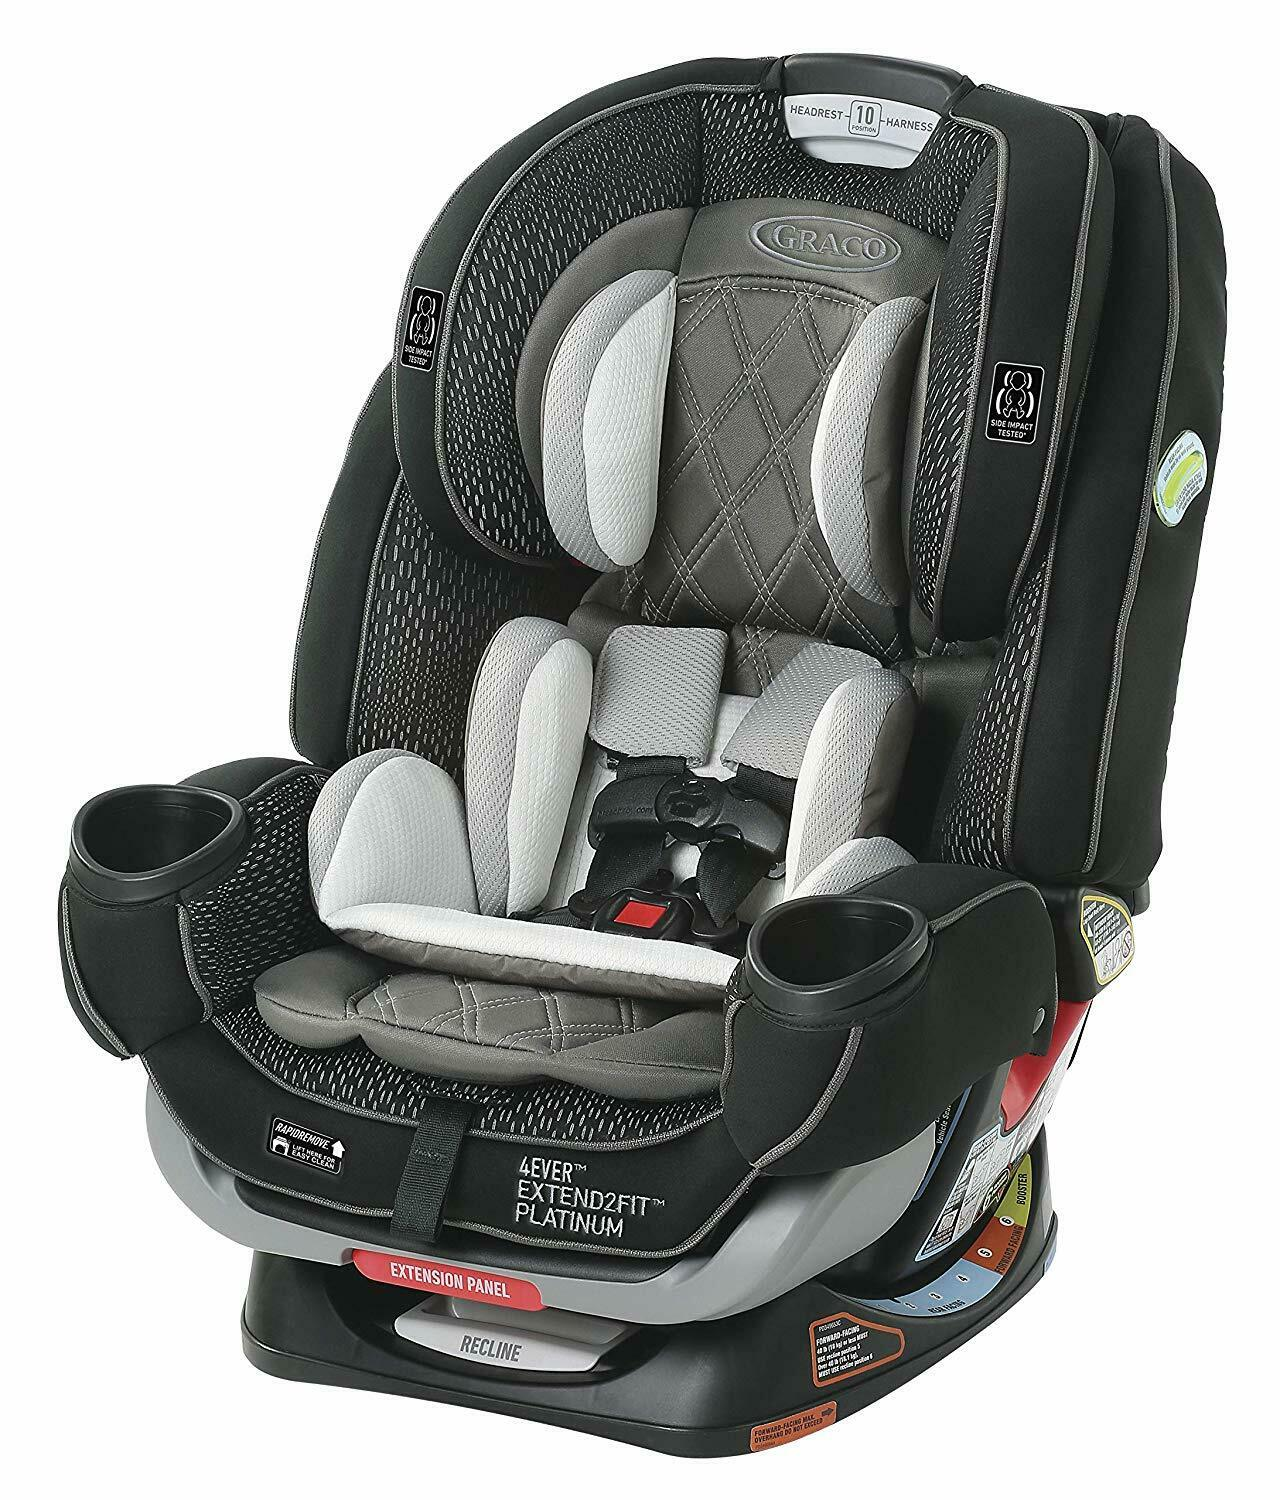 Graco 4Ever Extend2Fit Platinum 4-in-1 Car Seat in Hurley